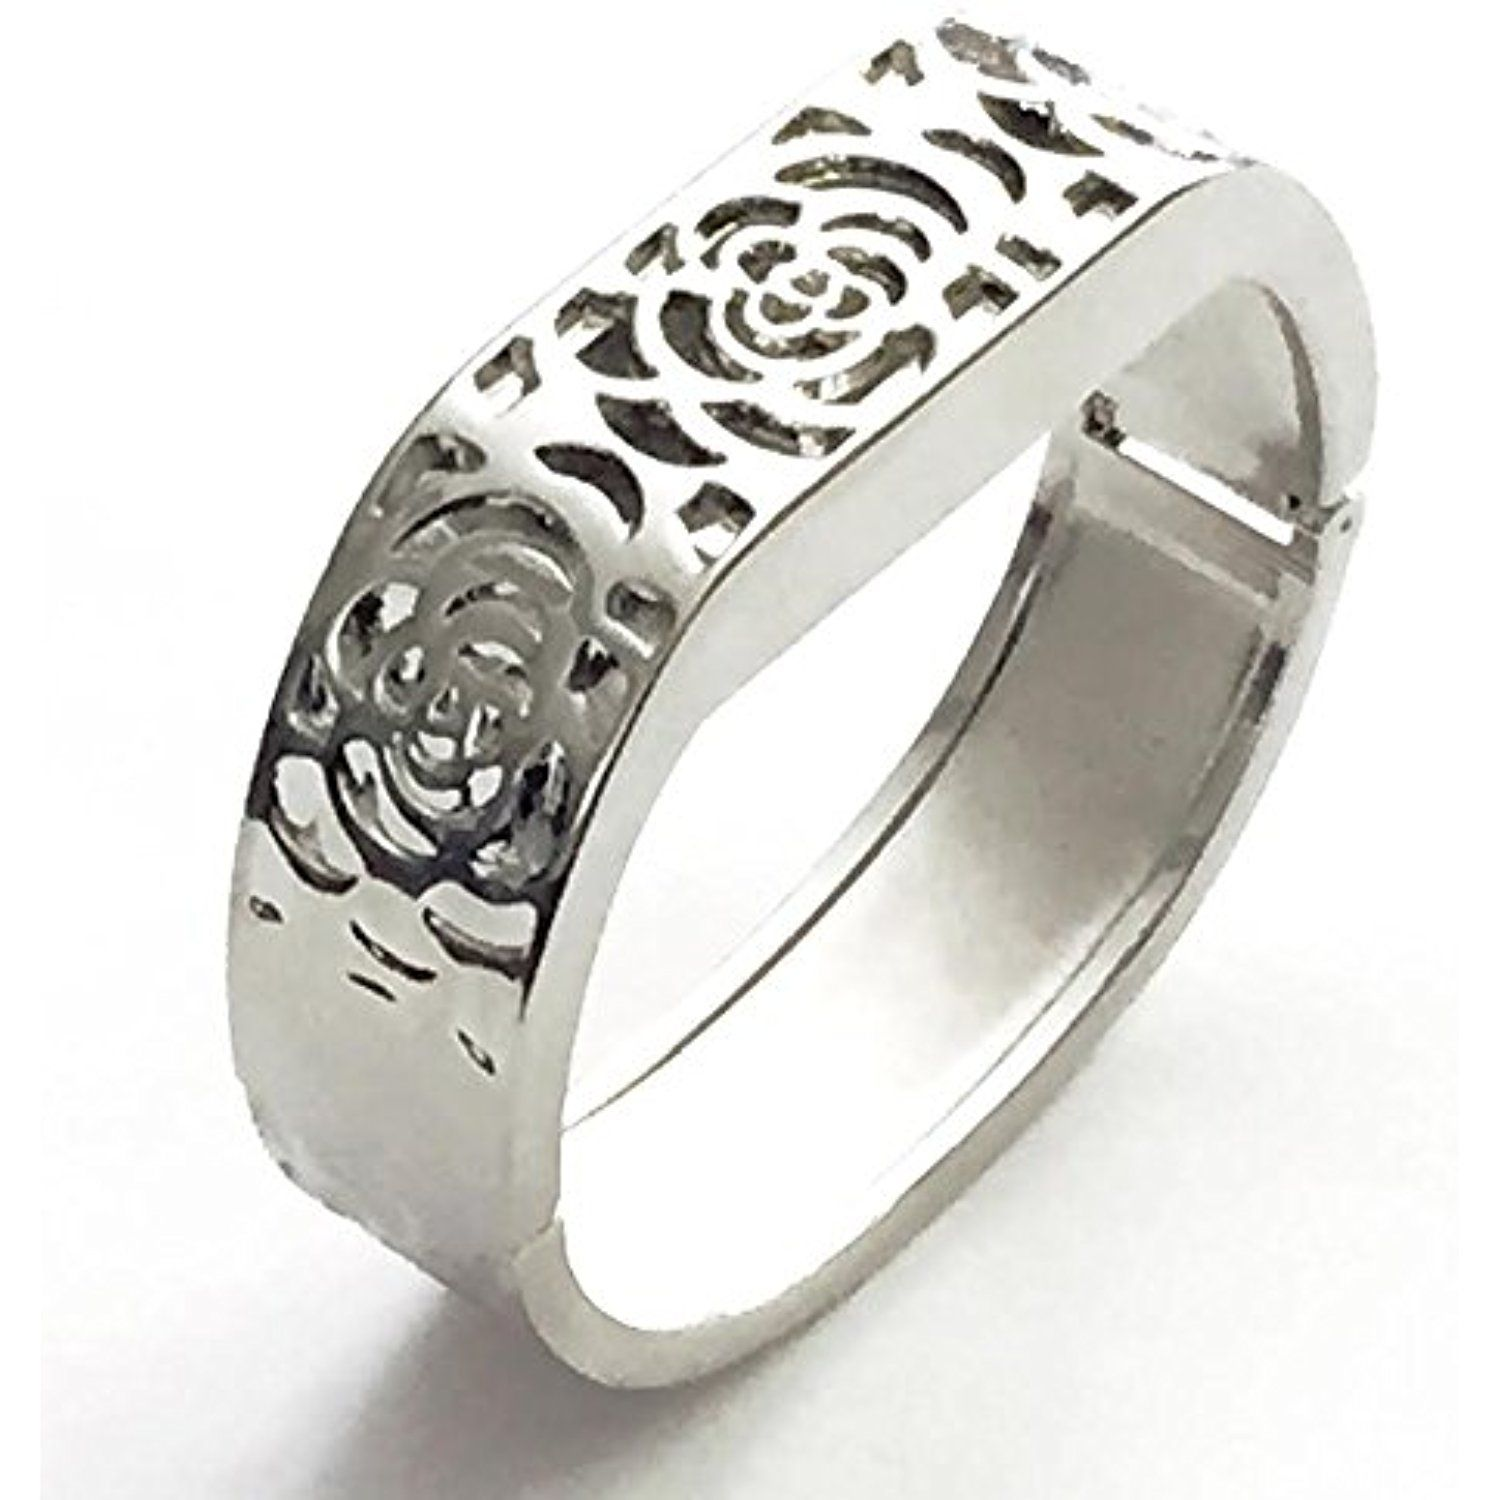 Bsi elegant silver metal replacement jewelry bracelet with unique